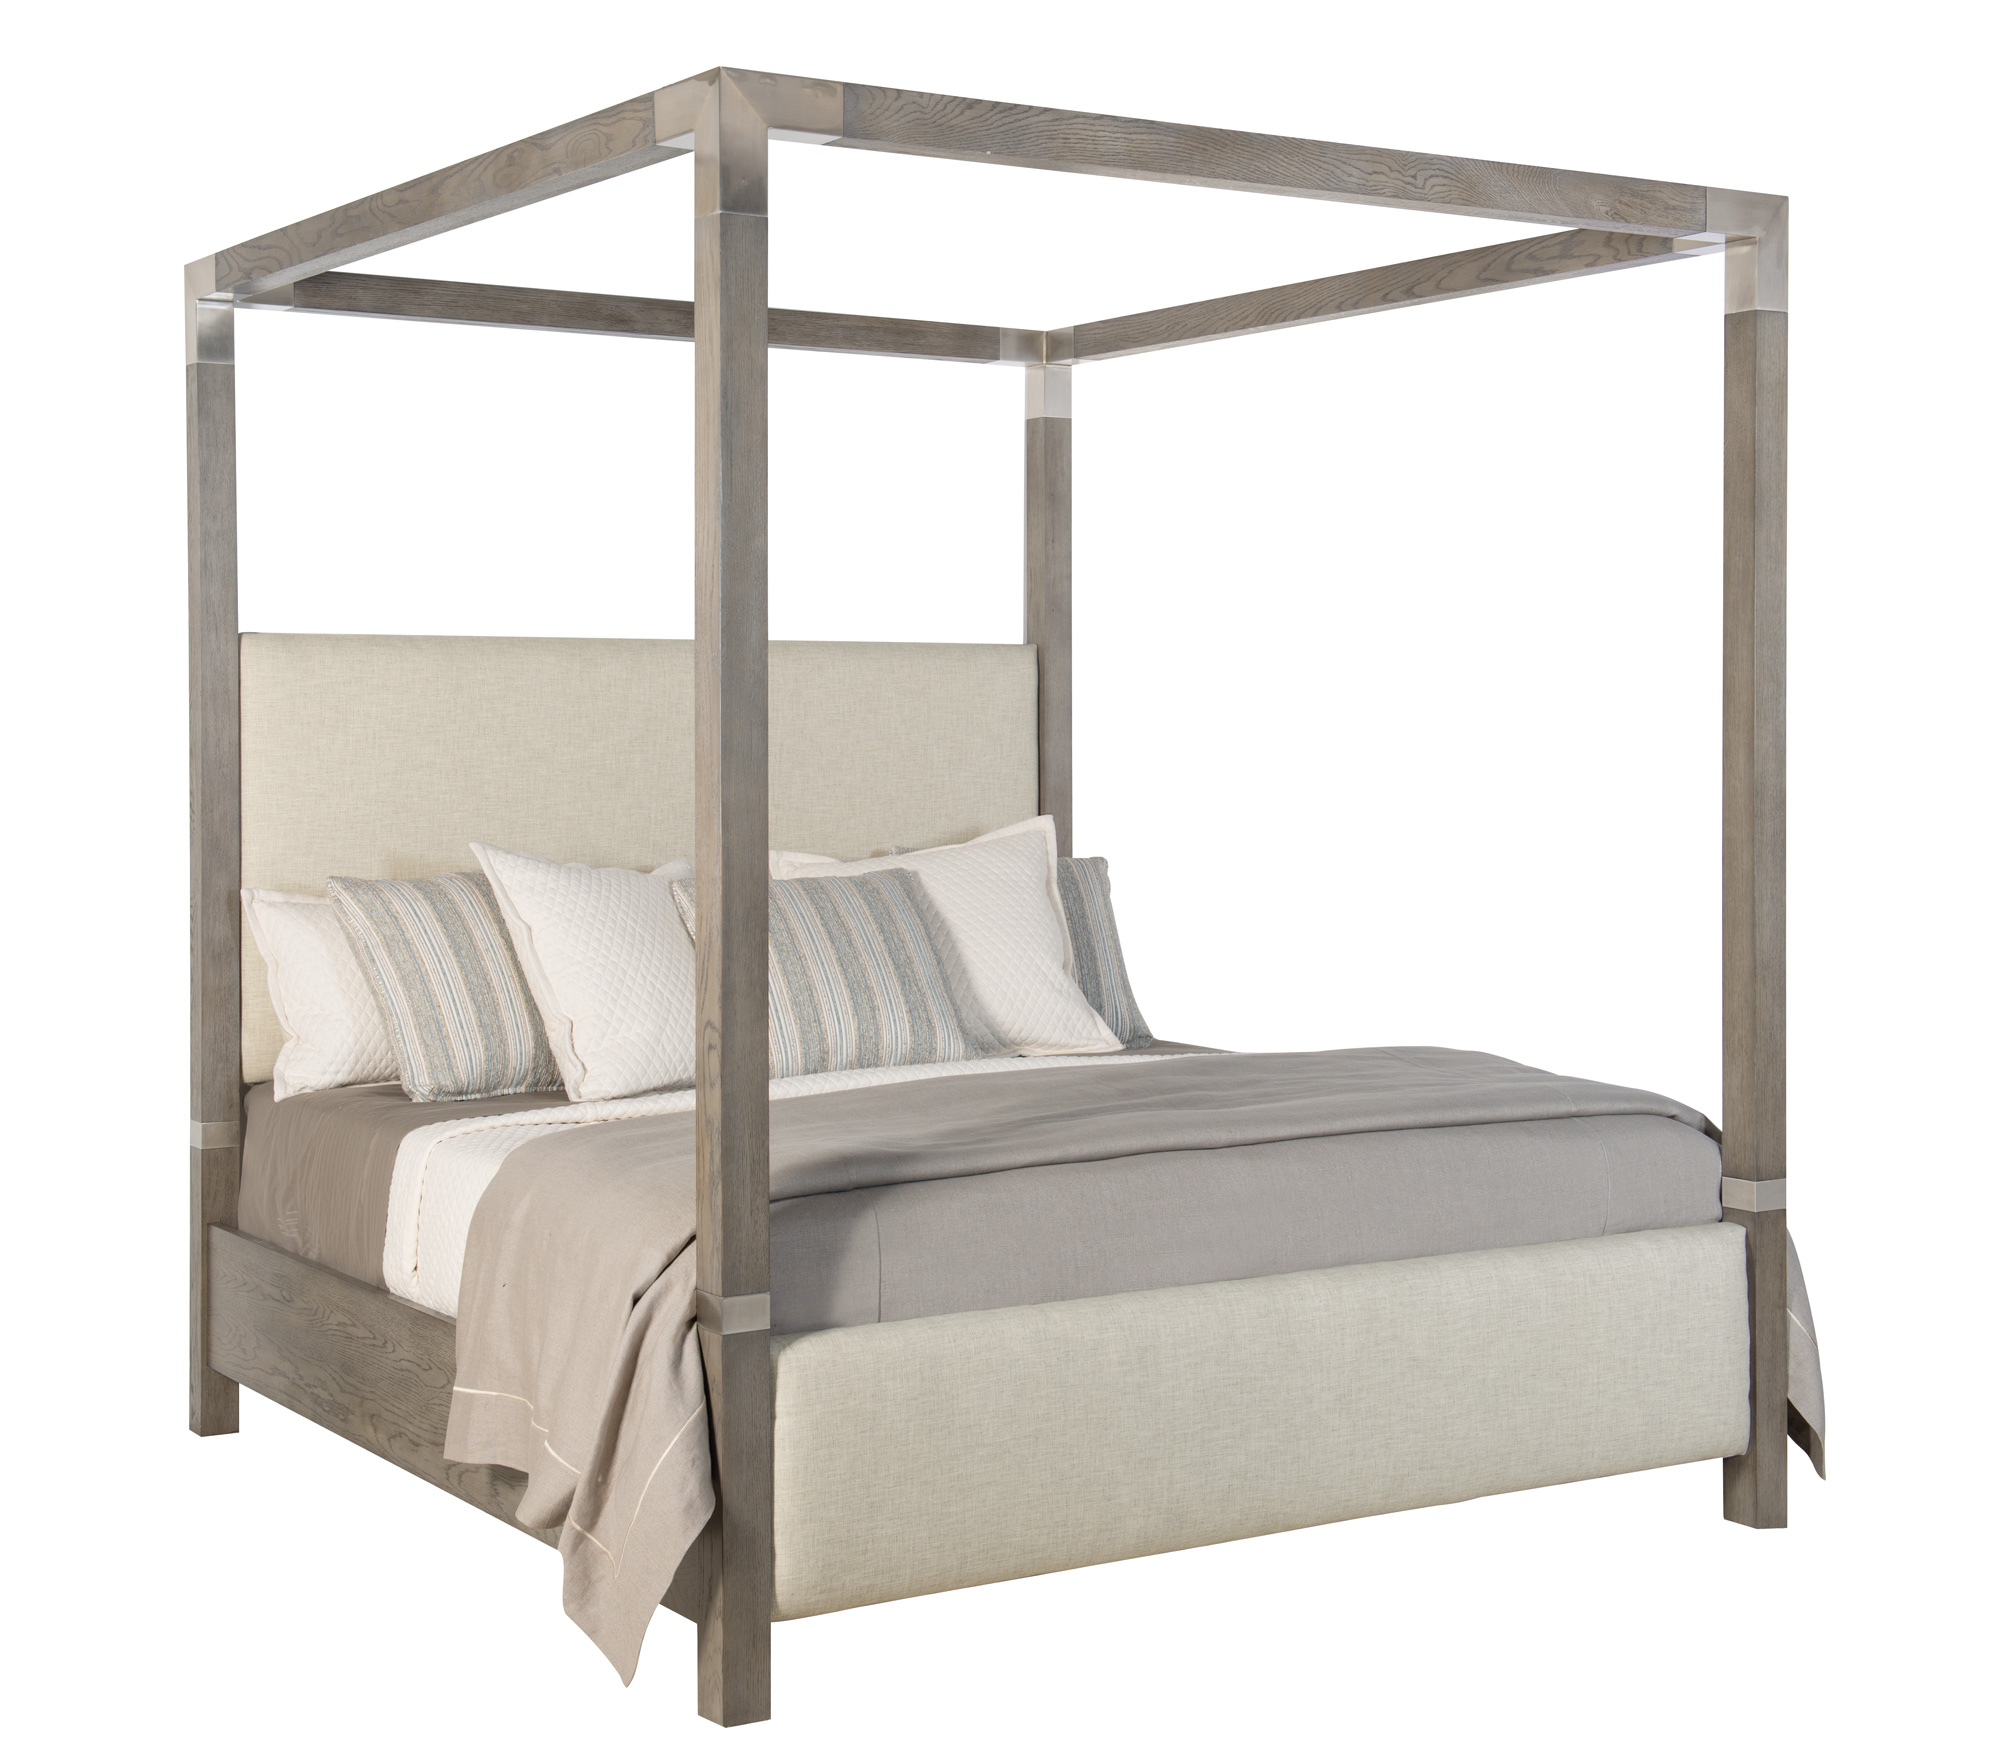 Palma Upholstered Canopy Bed (California King)